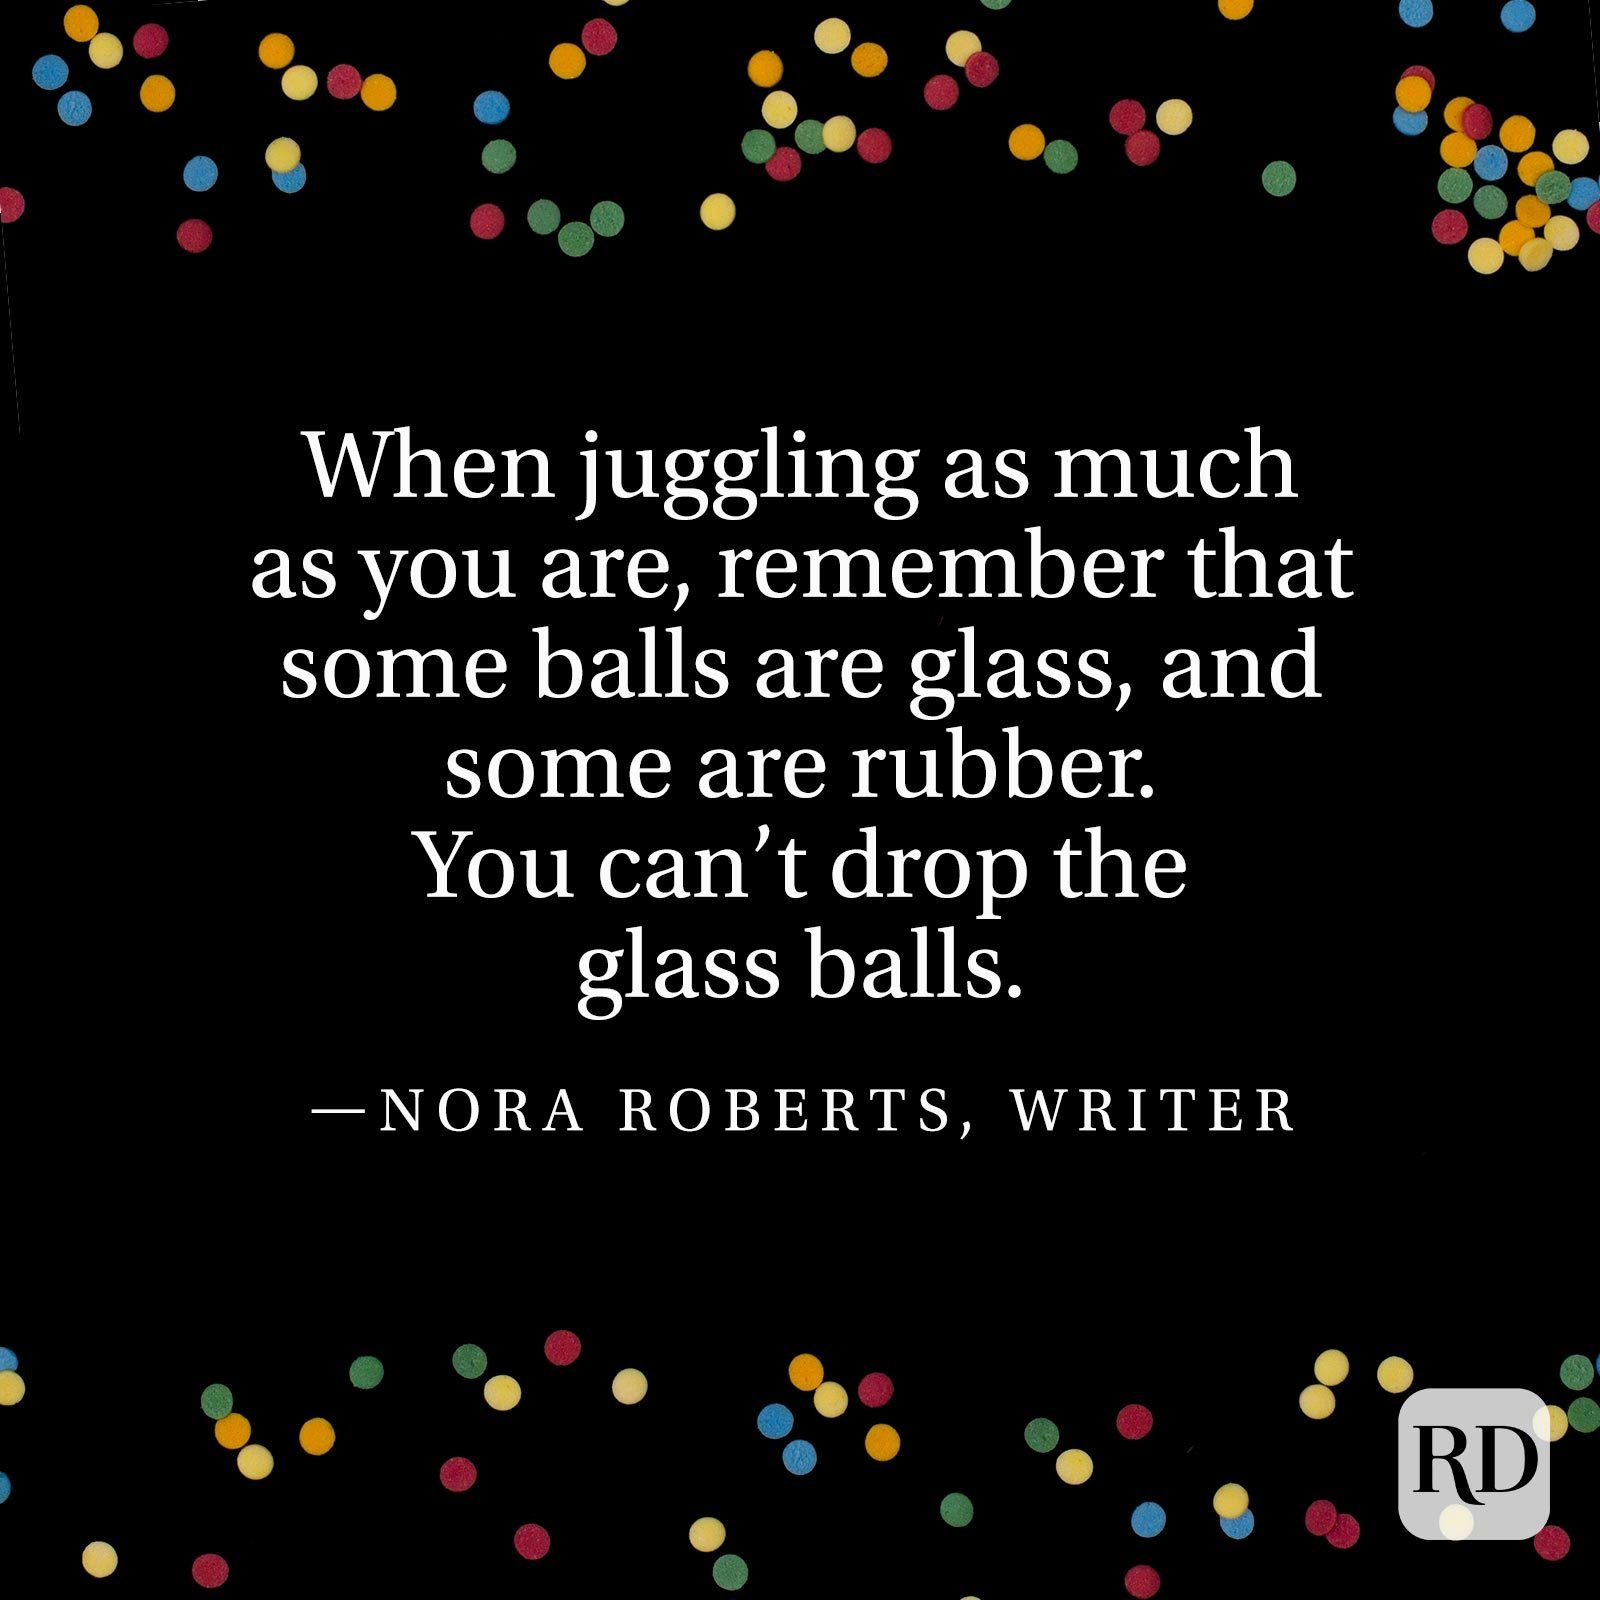 """When juggling as much as you are, remember that some balls are glass, and some are rubber. You can't drop the glass balls."" —Nora Roberts, writer"